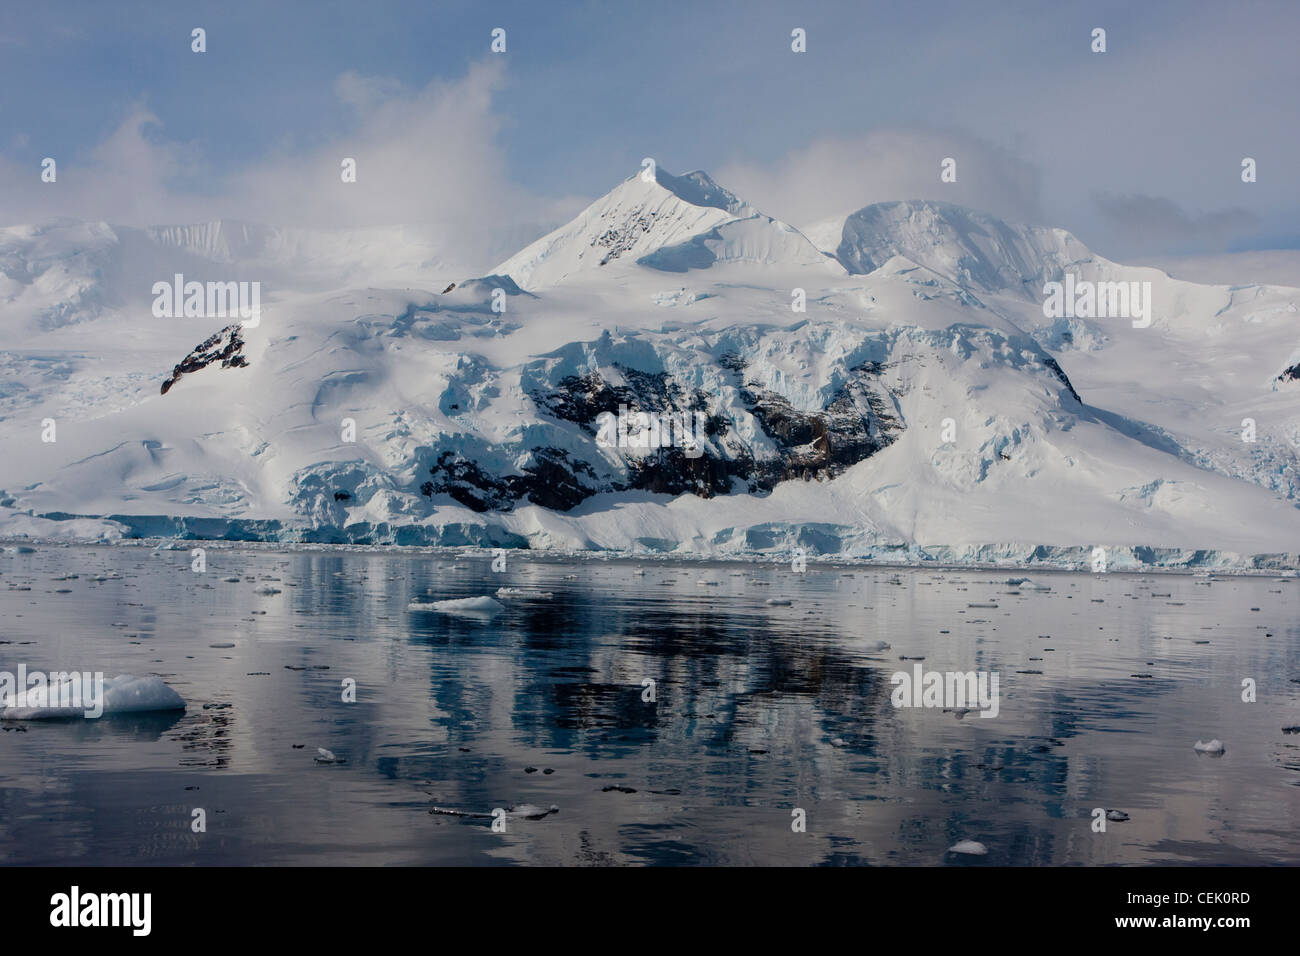 Mountain and reflection in southern ocean antarctica Stock Photo